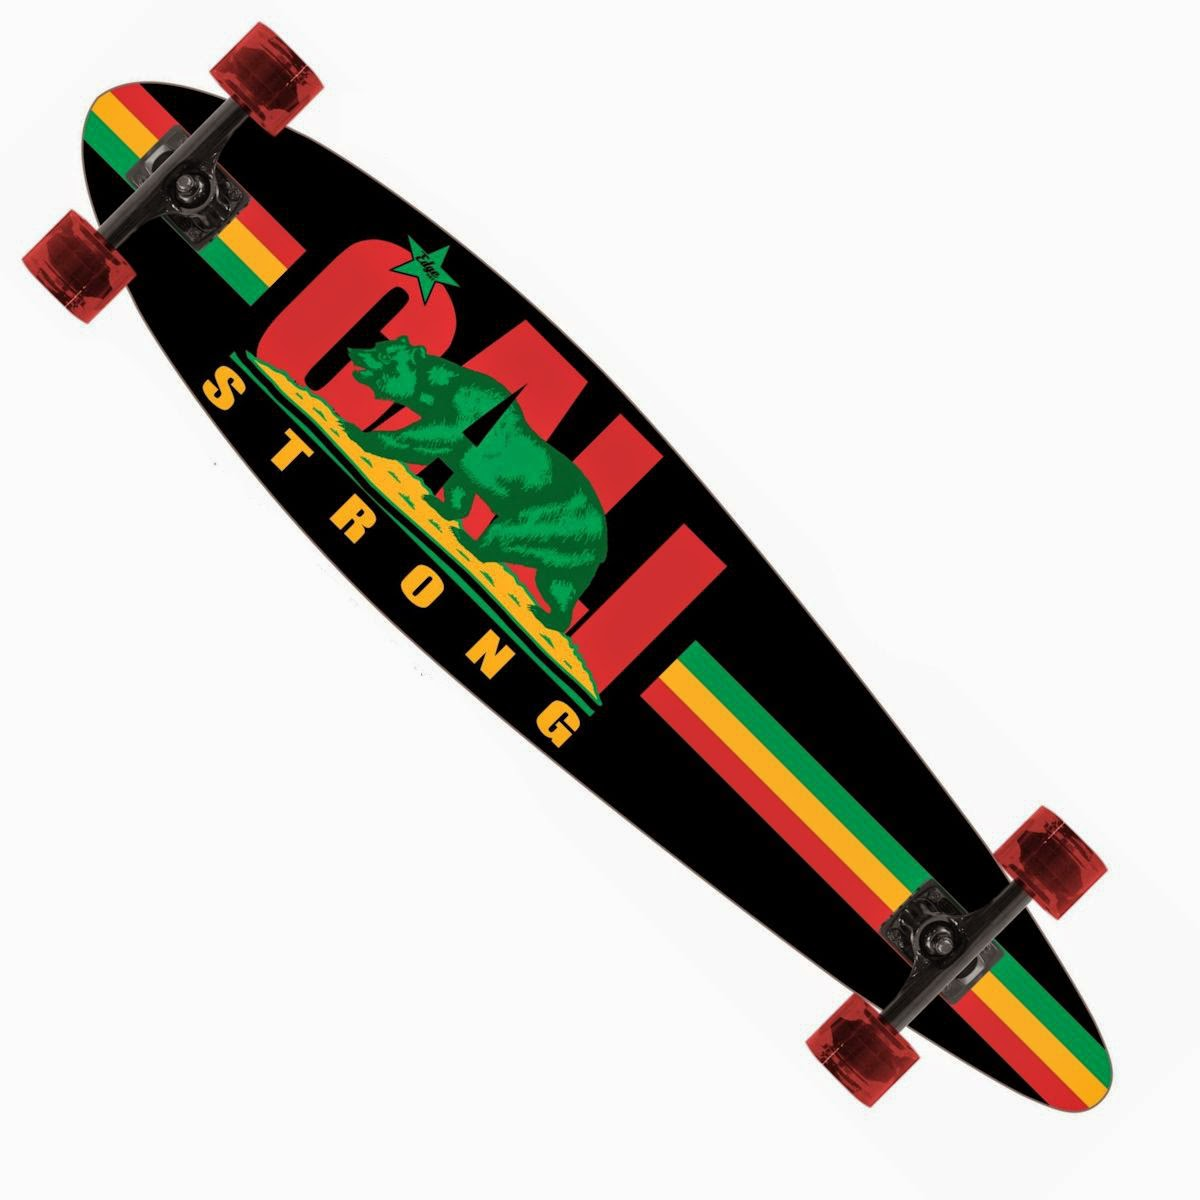 CALI Strong Rasta Longboard Pintail Complete 9.25″ x 39.25″